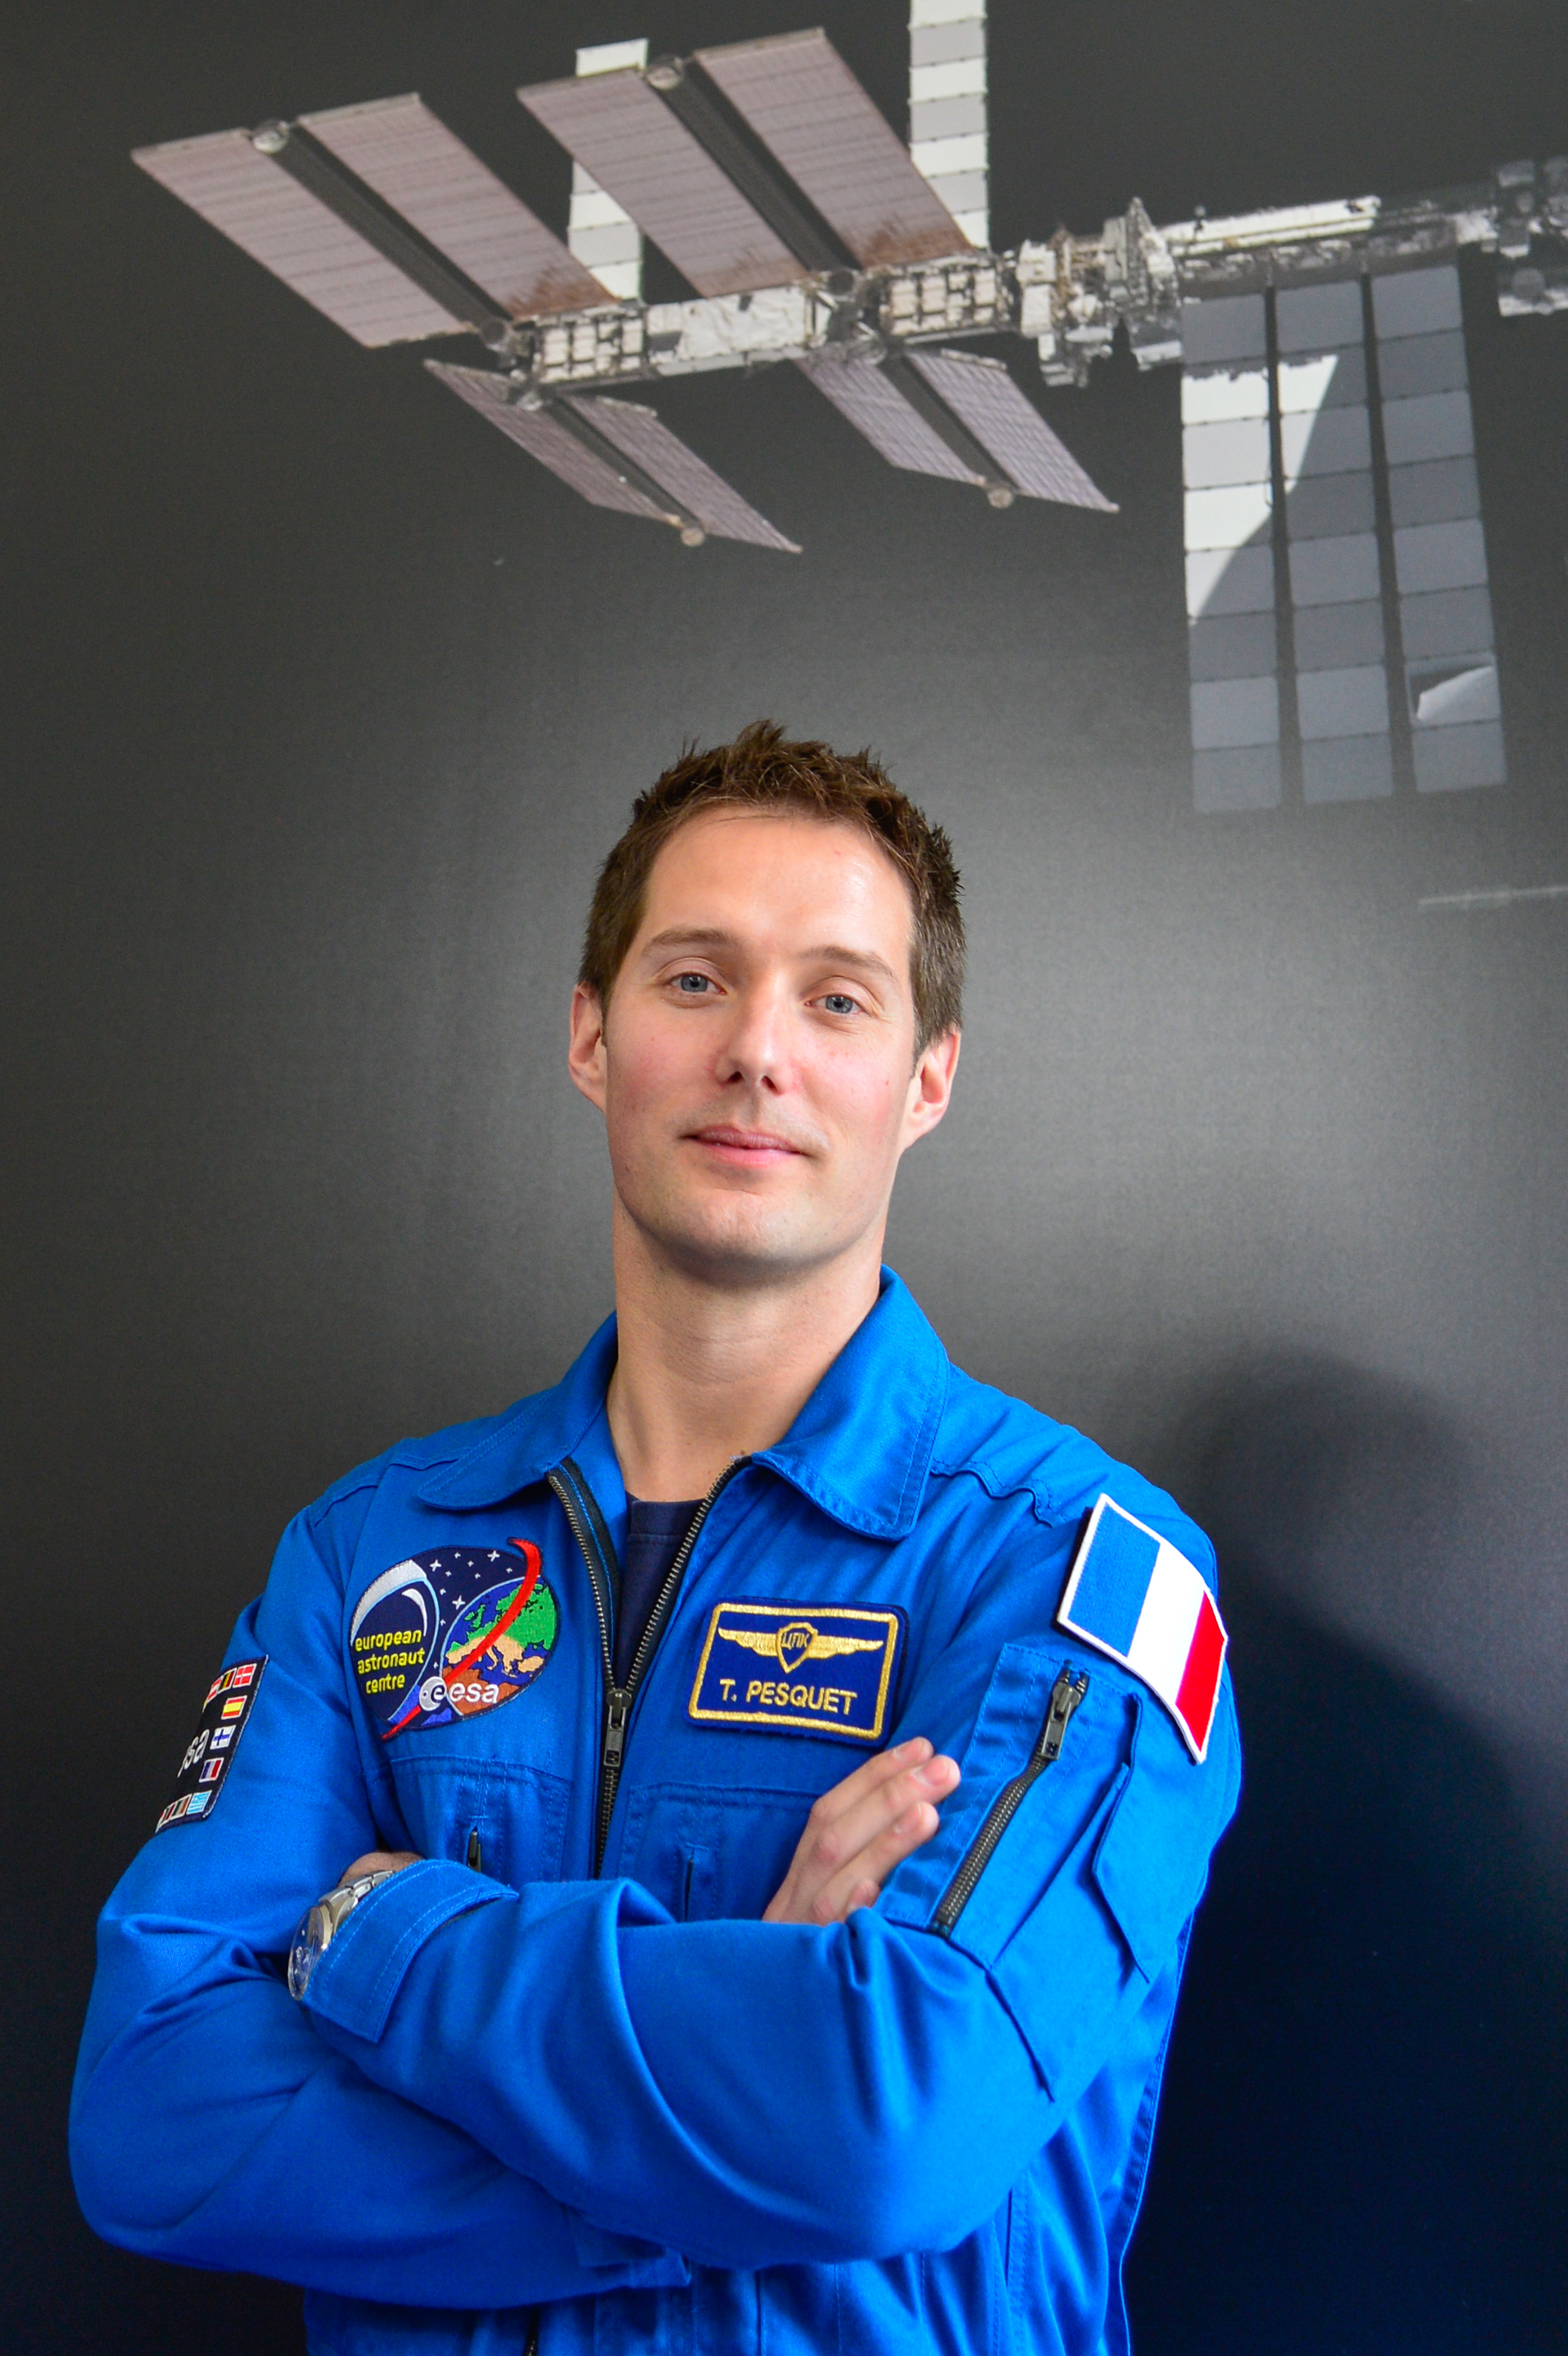 prx_thomas_pesquet_has_been_assigned_to_a_long-duration_mission_to_the_iss1.jpg